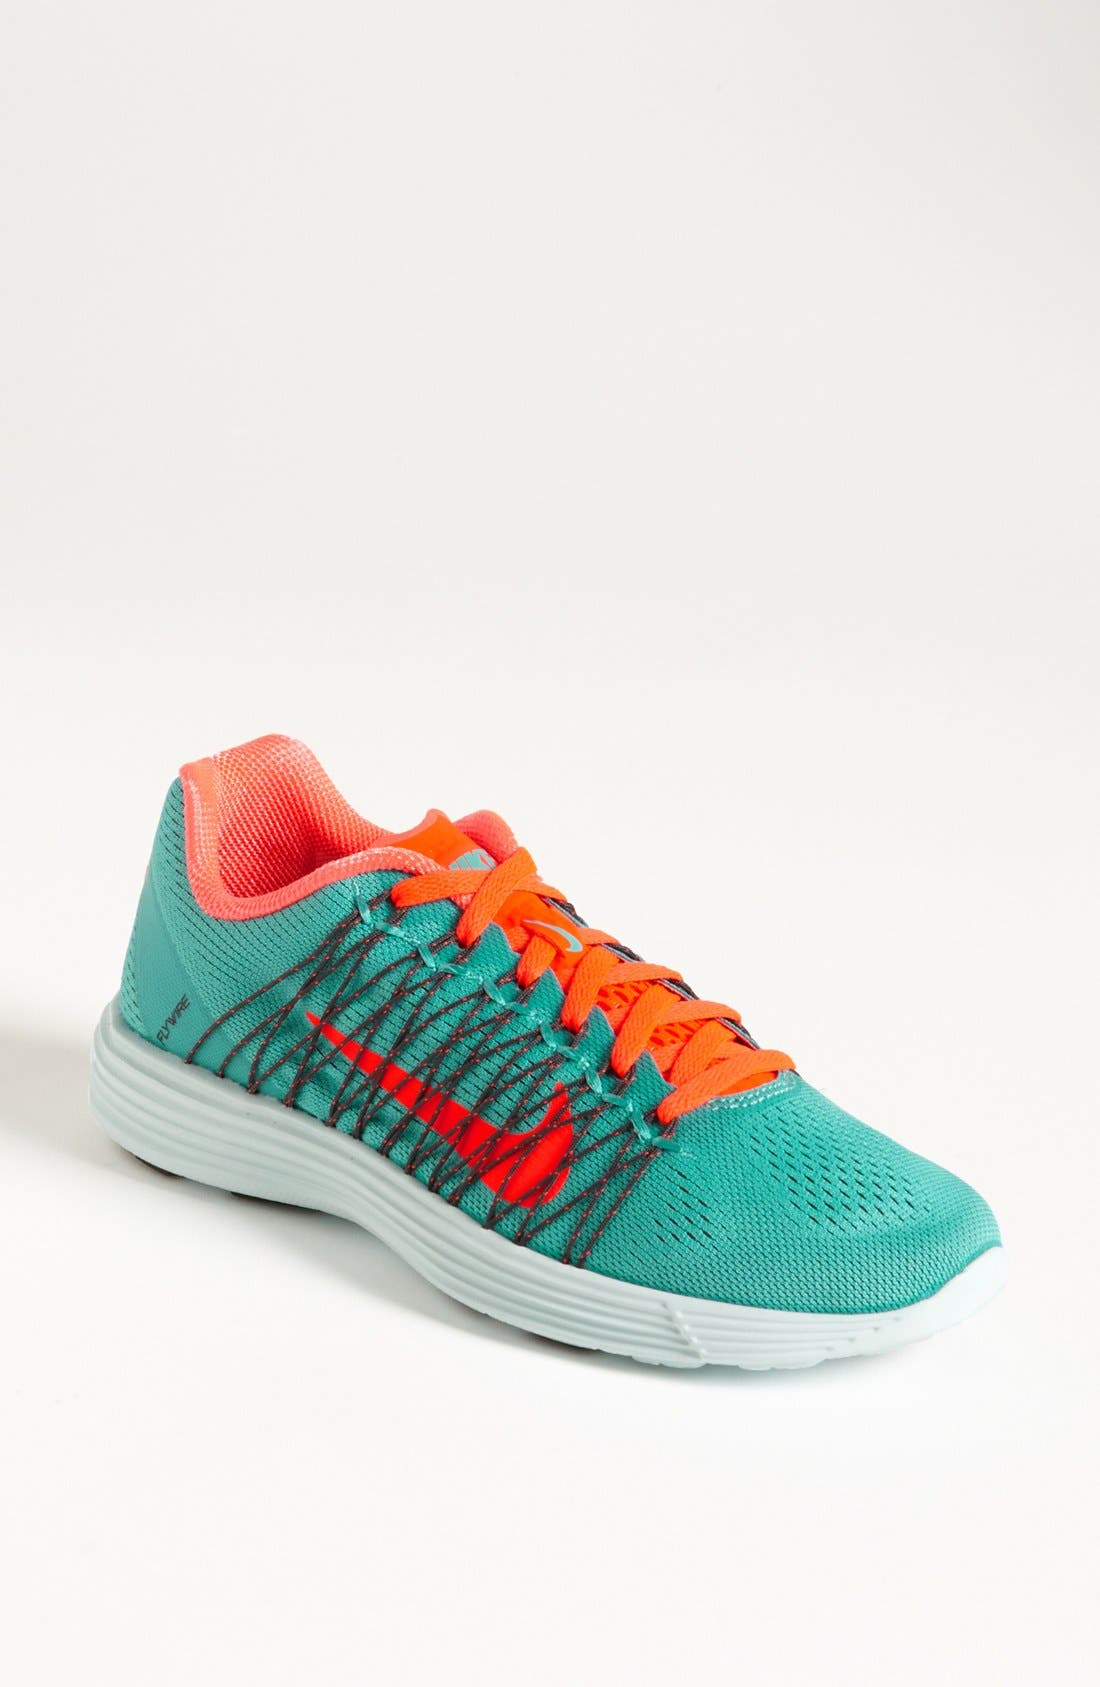 Alternate Image 1 Selected - Nike 'Lunaracer+ 3' Running Shoe (Women)